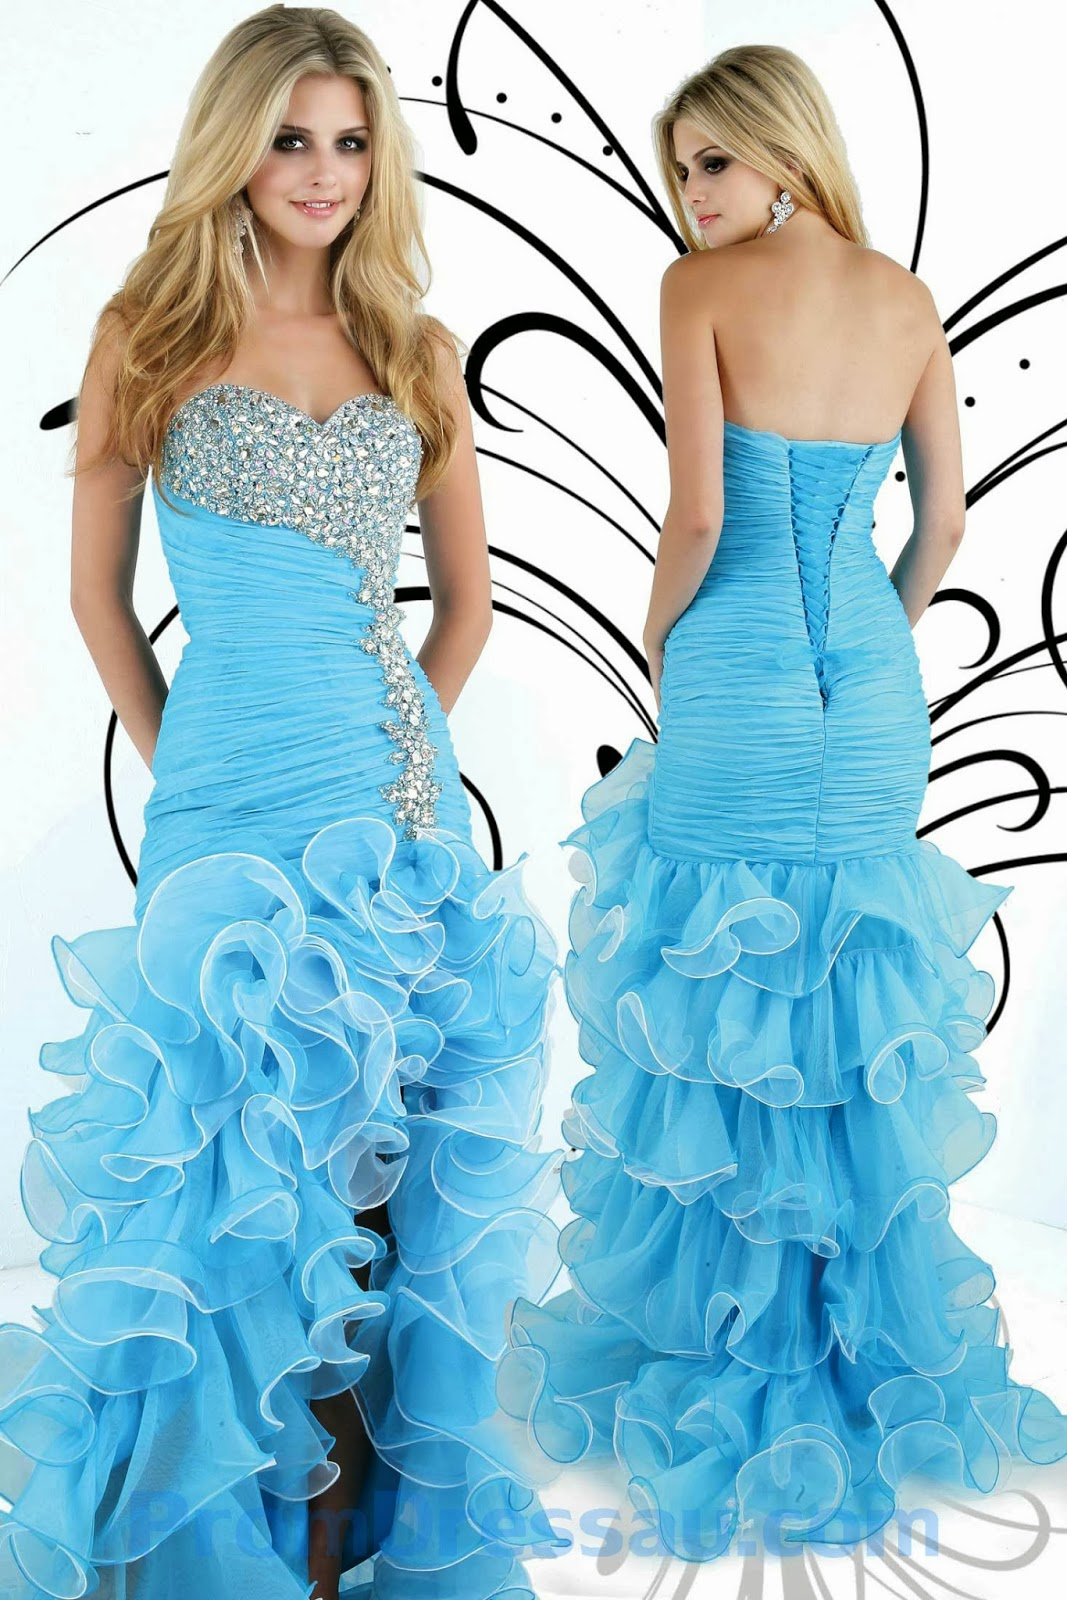 LilacFashion Mermaid Style Sweetheart Beaded Ruched